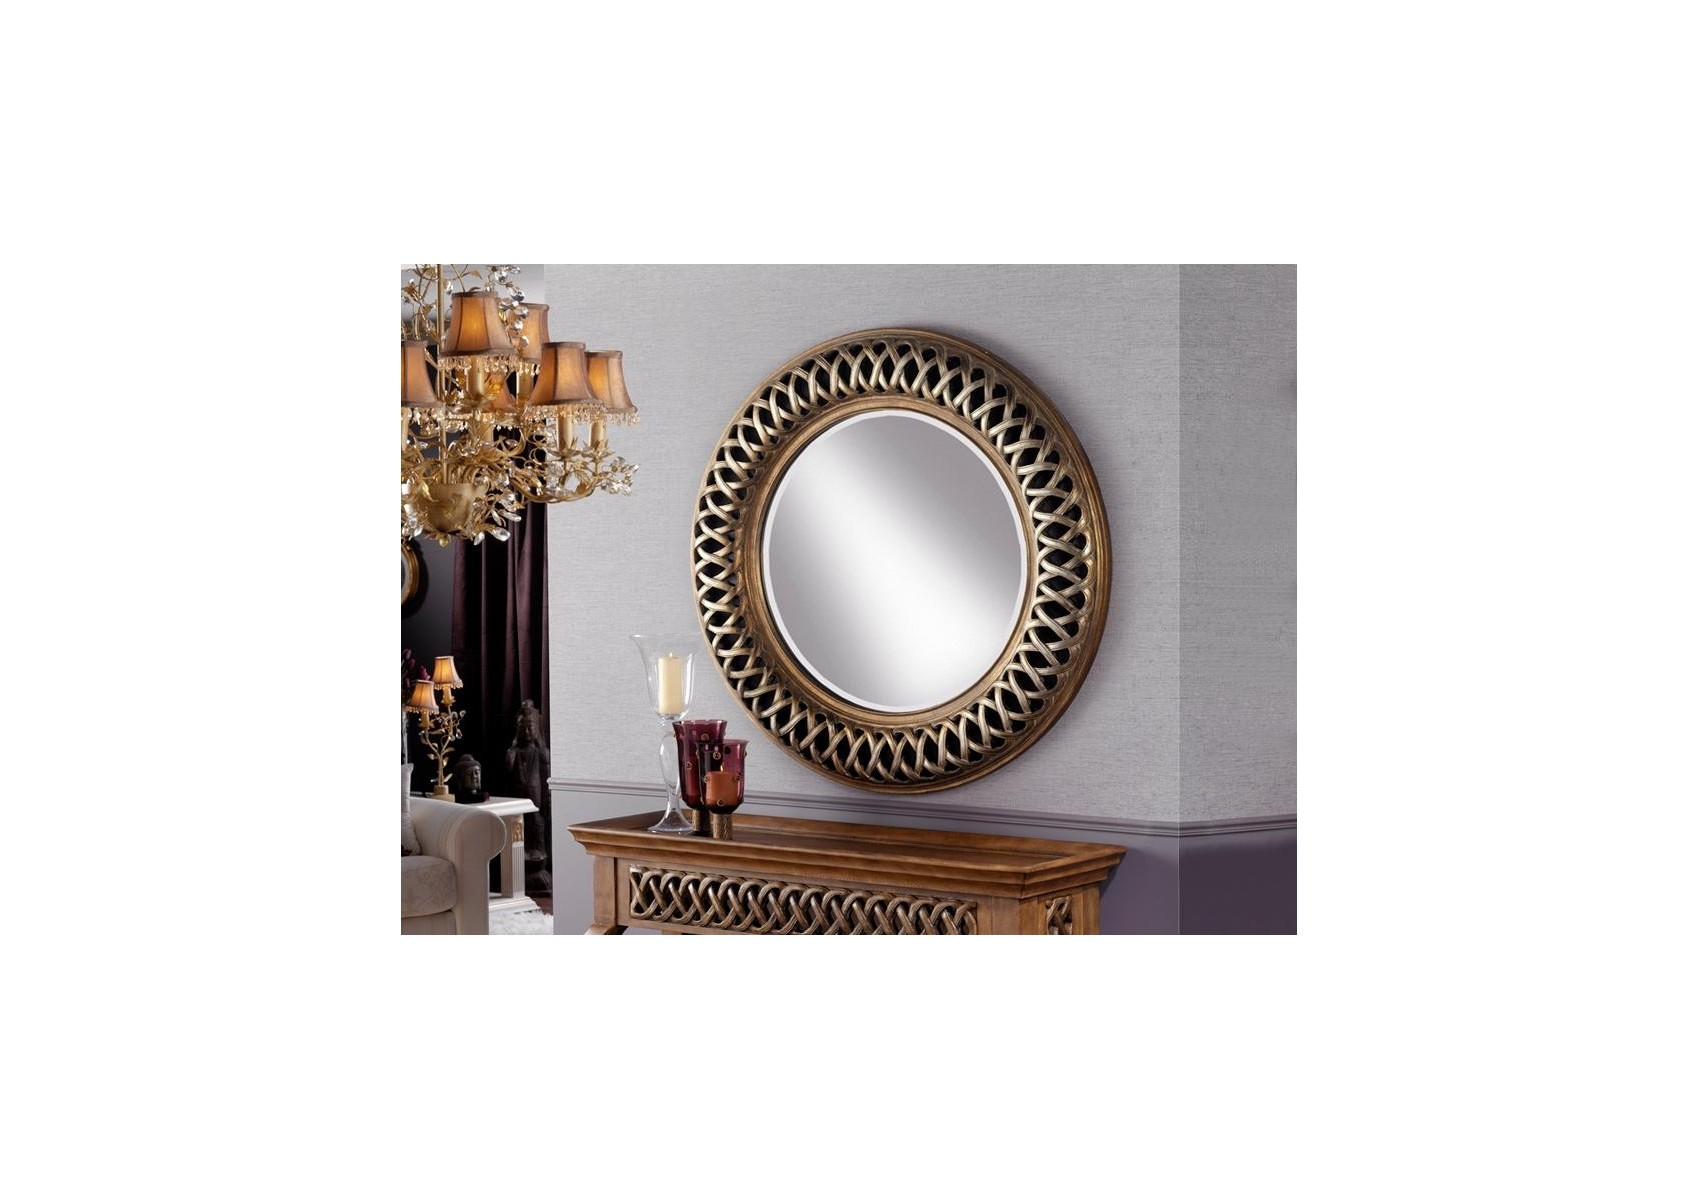 miroir original design rond ajoure argent et or deco. Black Bedroom Furniture Sets. Home Design Ideas